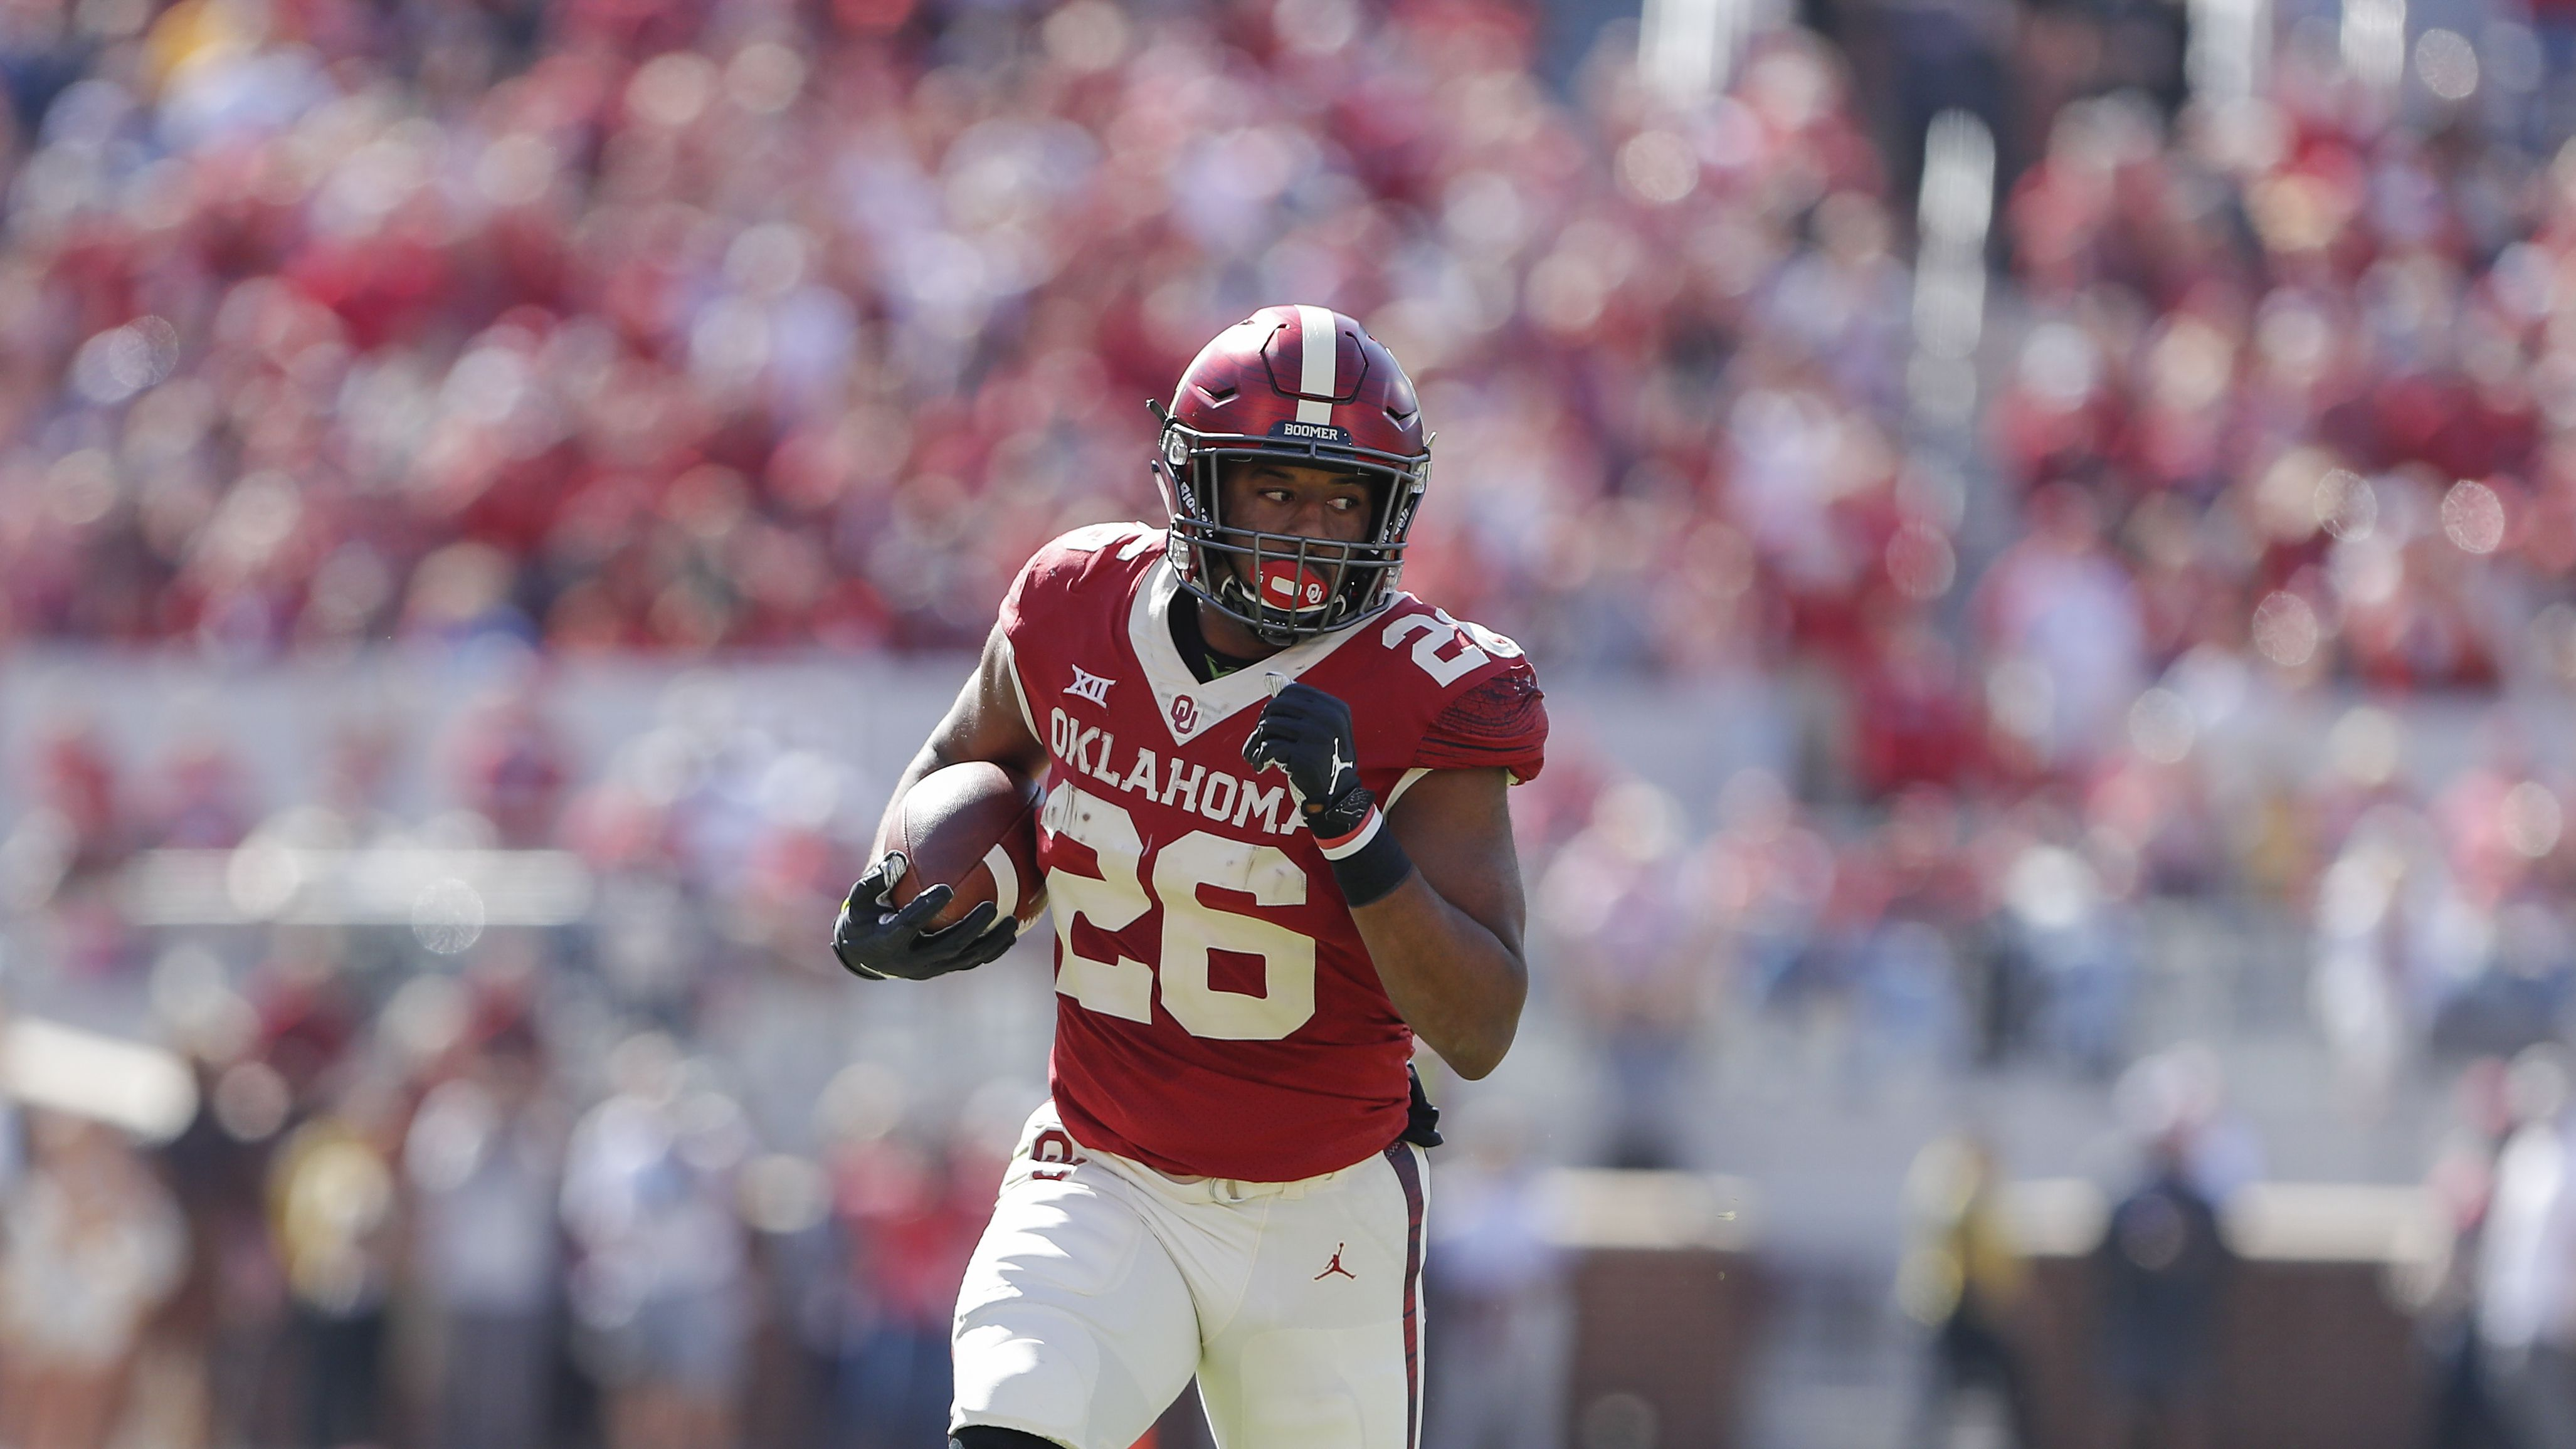 Oklahoma Running Back Outlook For 2020 Sooners Return Almost All Production But Where Is The Upside